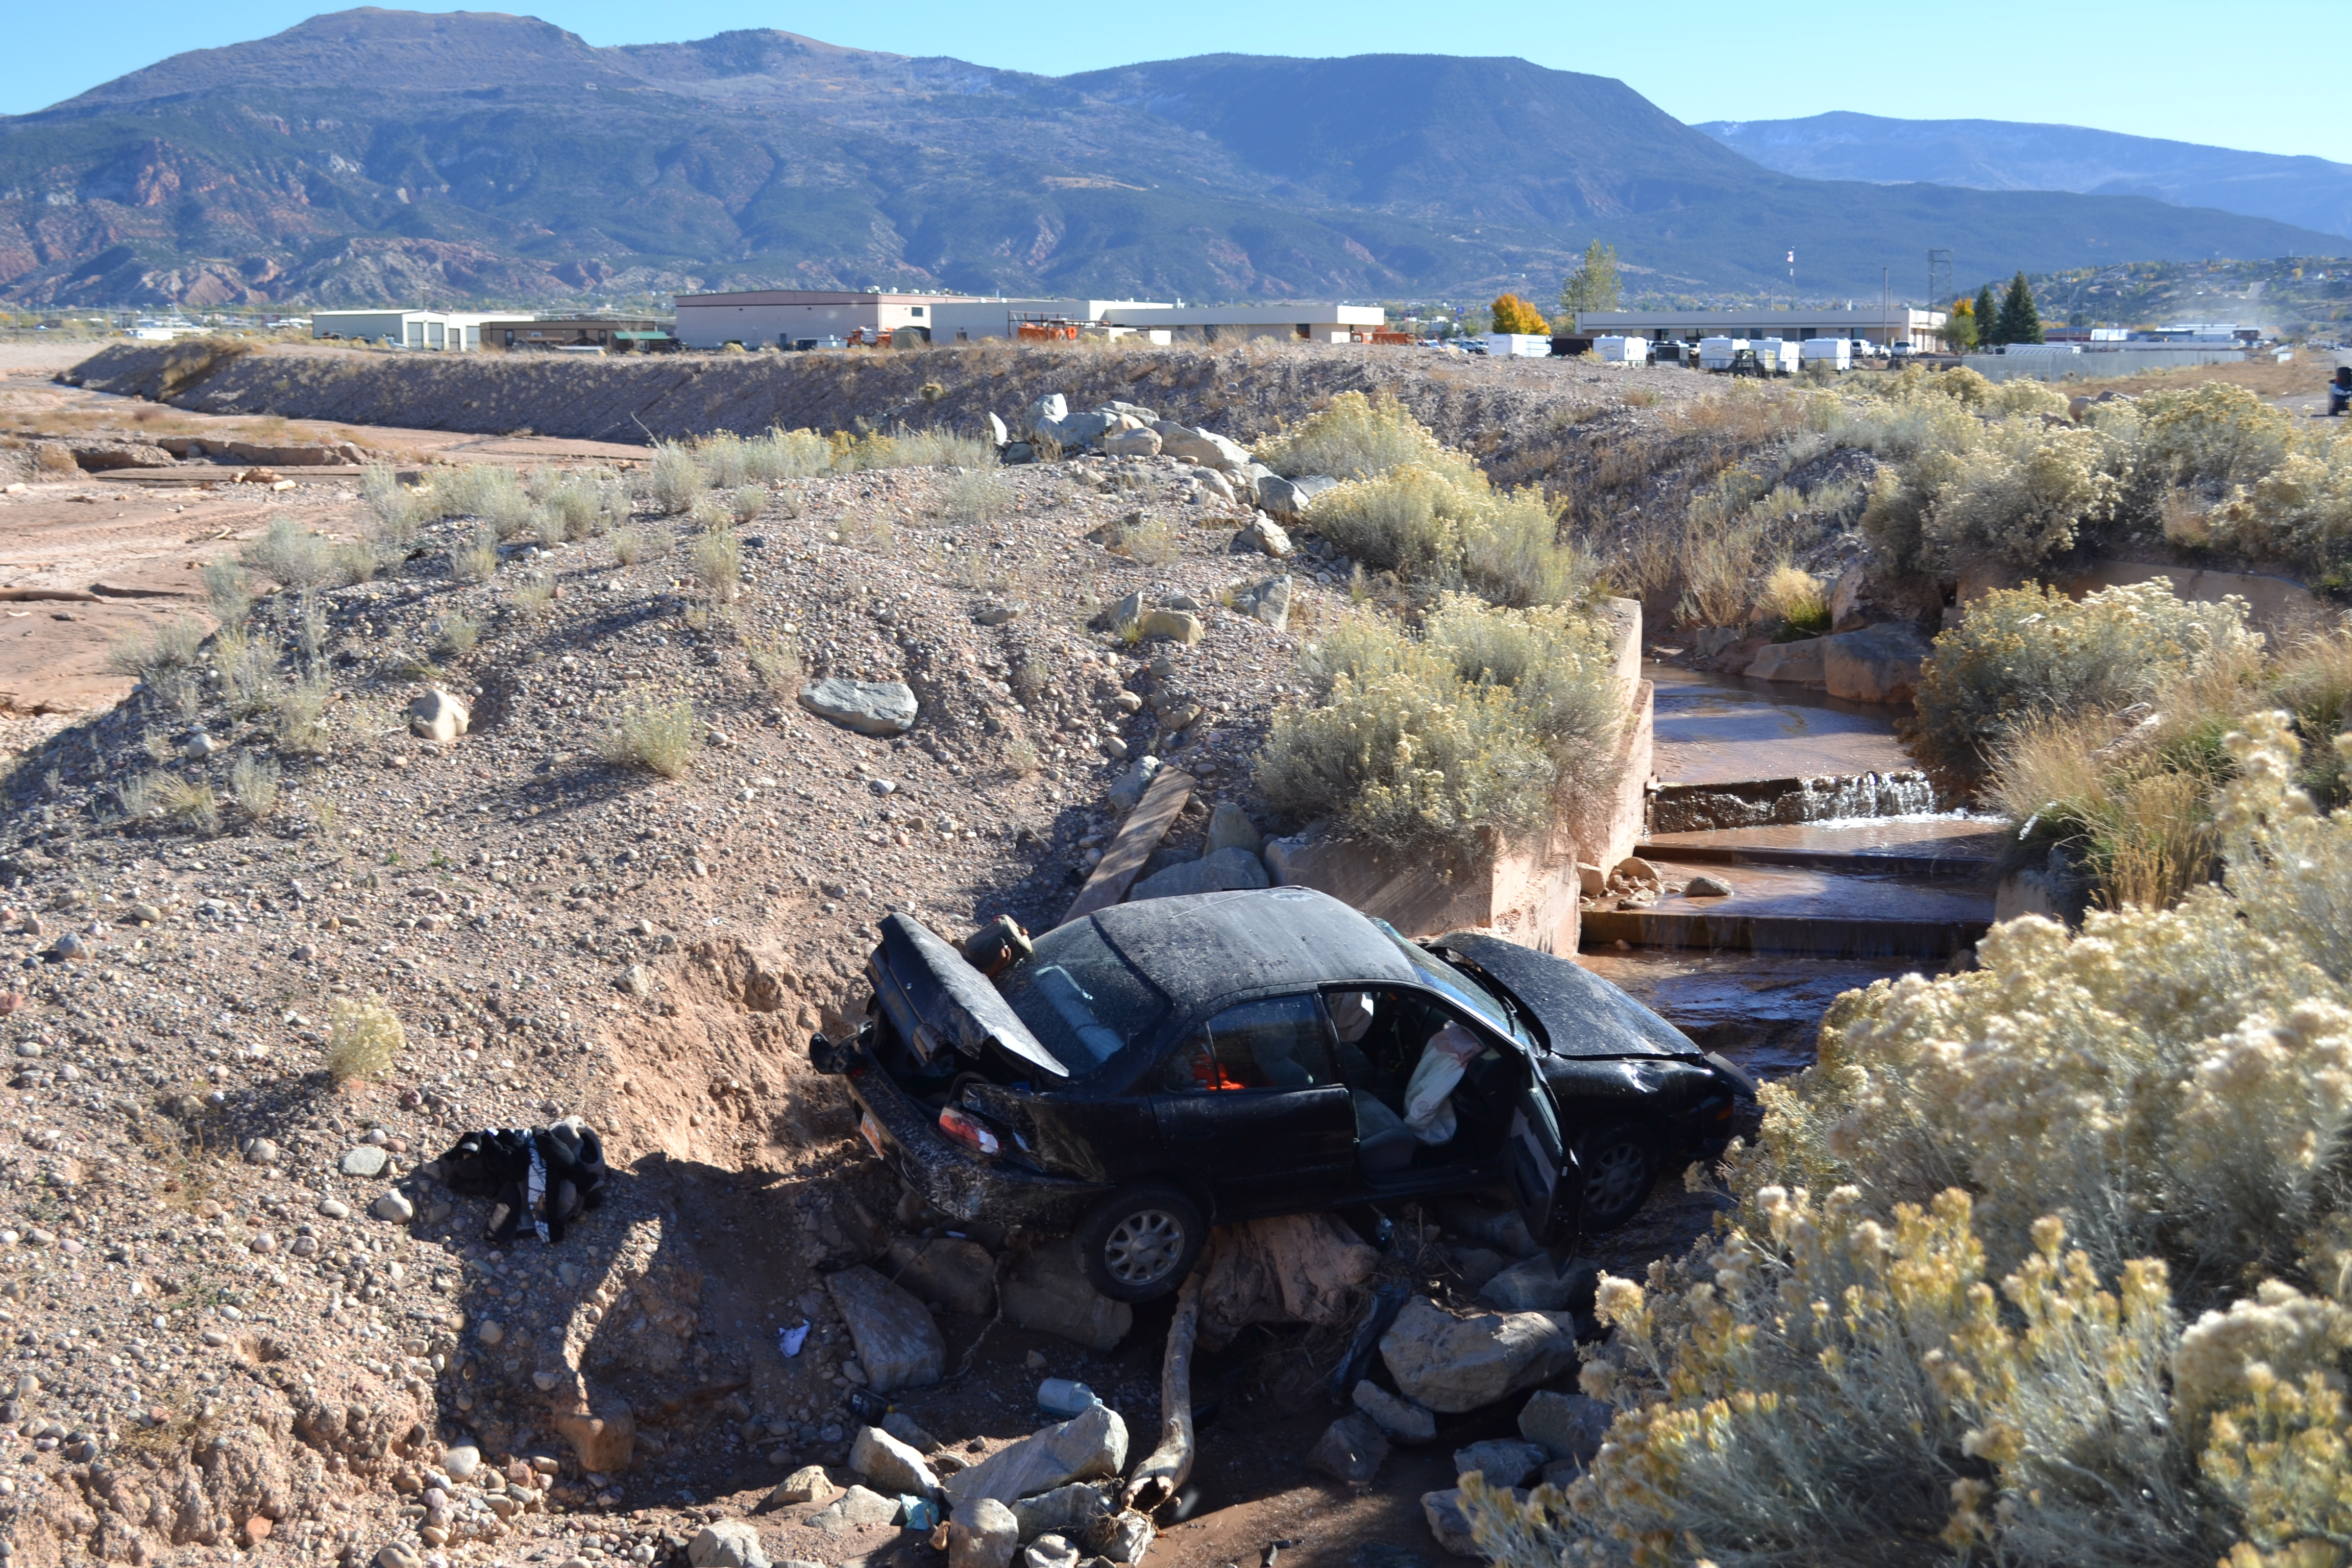 A woman reached for her phone while driving and crashed into a ditch, Cedar City, Utah, Nov. 2, 2015 | Photo by Emily Hammer, St. George News